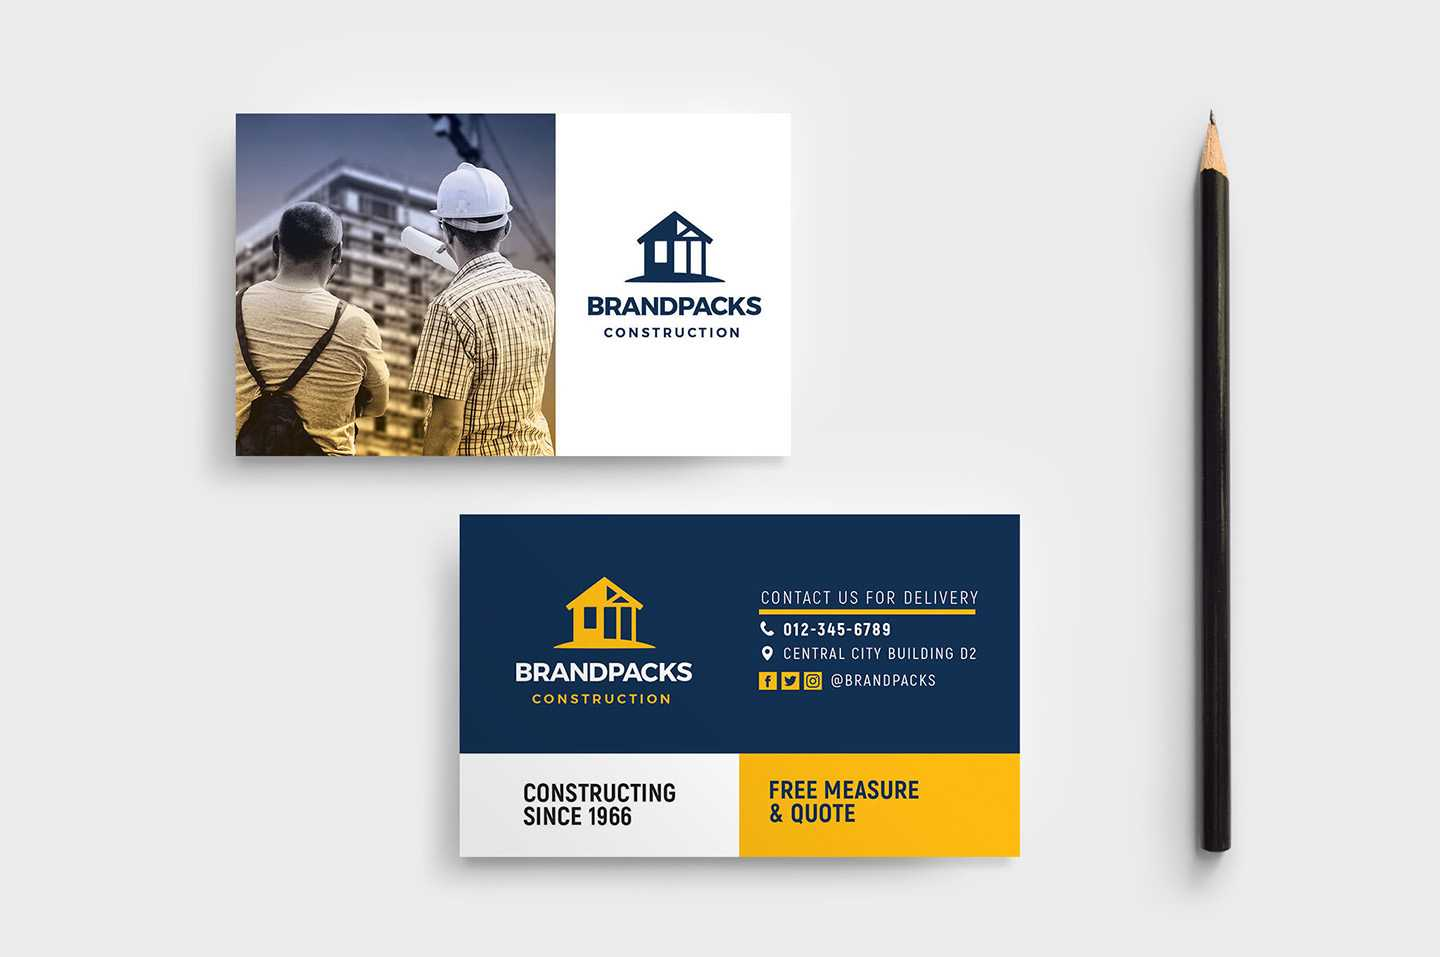 Construction Company Business Card Template In Psd, Ai For Construction Business Card Templates Download Free